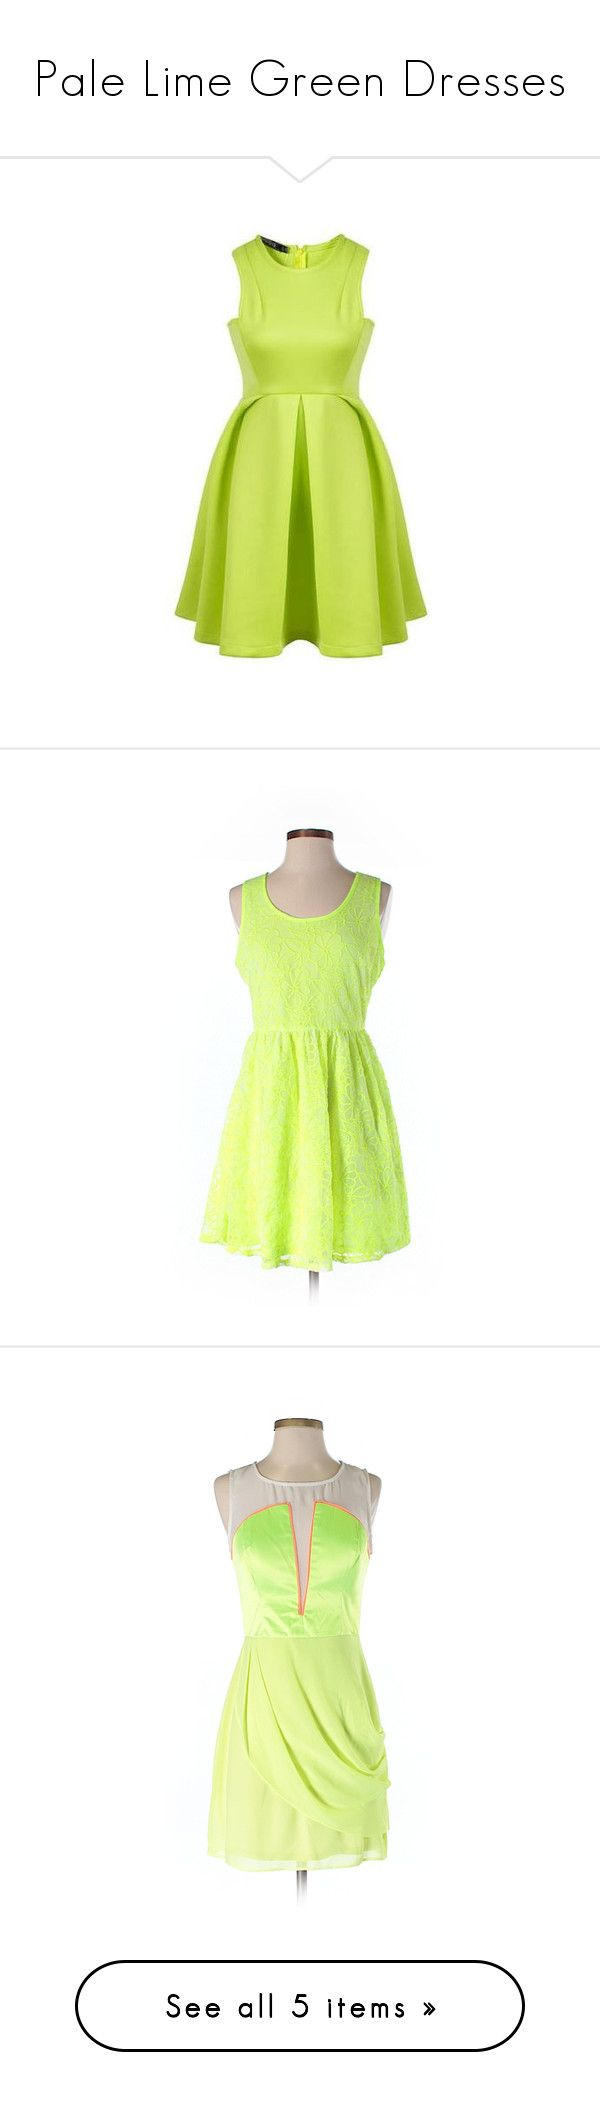 """""""Pale Lime Green Dresses"""" by tegan-b-riley on Polyvore featuring dresses, sleeveless dress, green ruffle dress, yellow green dress, sleeveless flare dress, flutter-sleeve dress, light green, light green dress, very j and green color dress"""